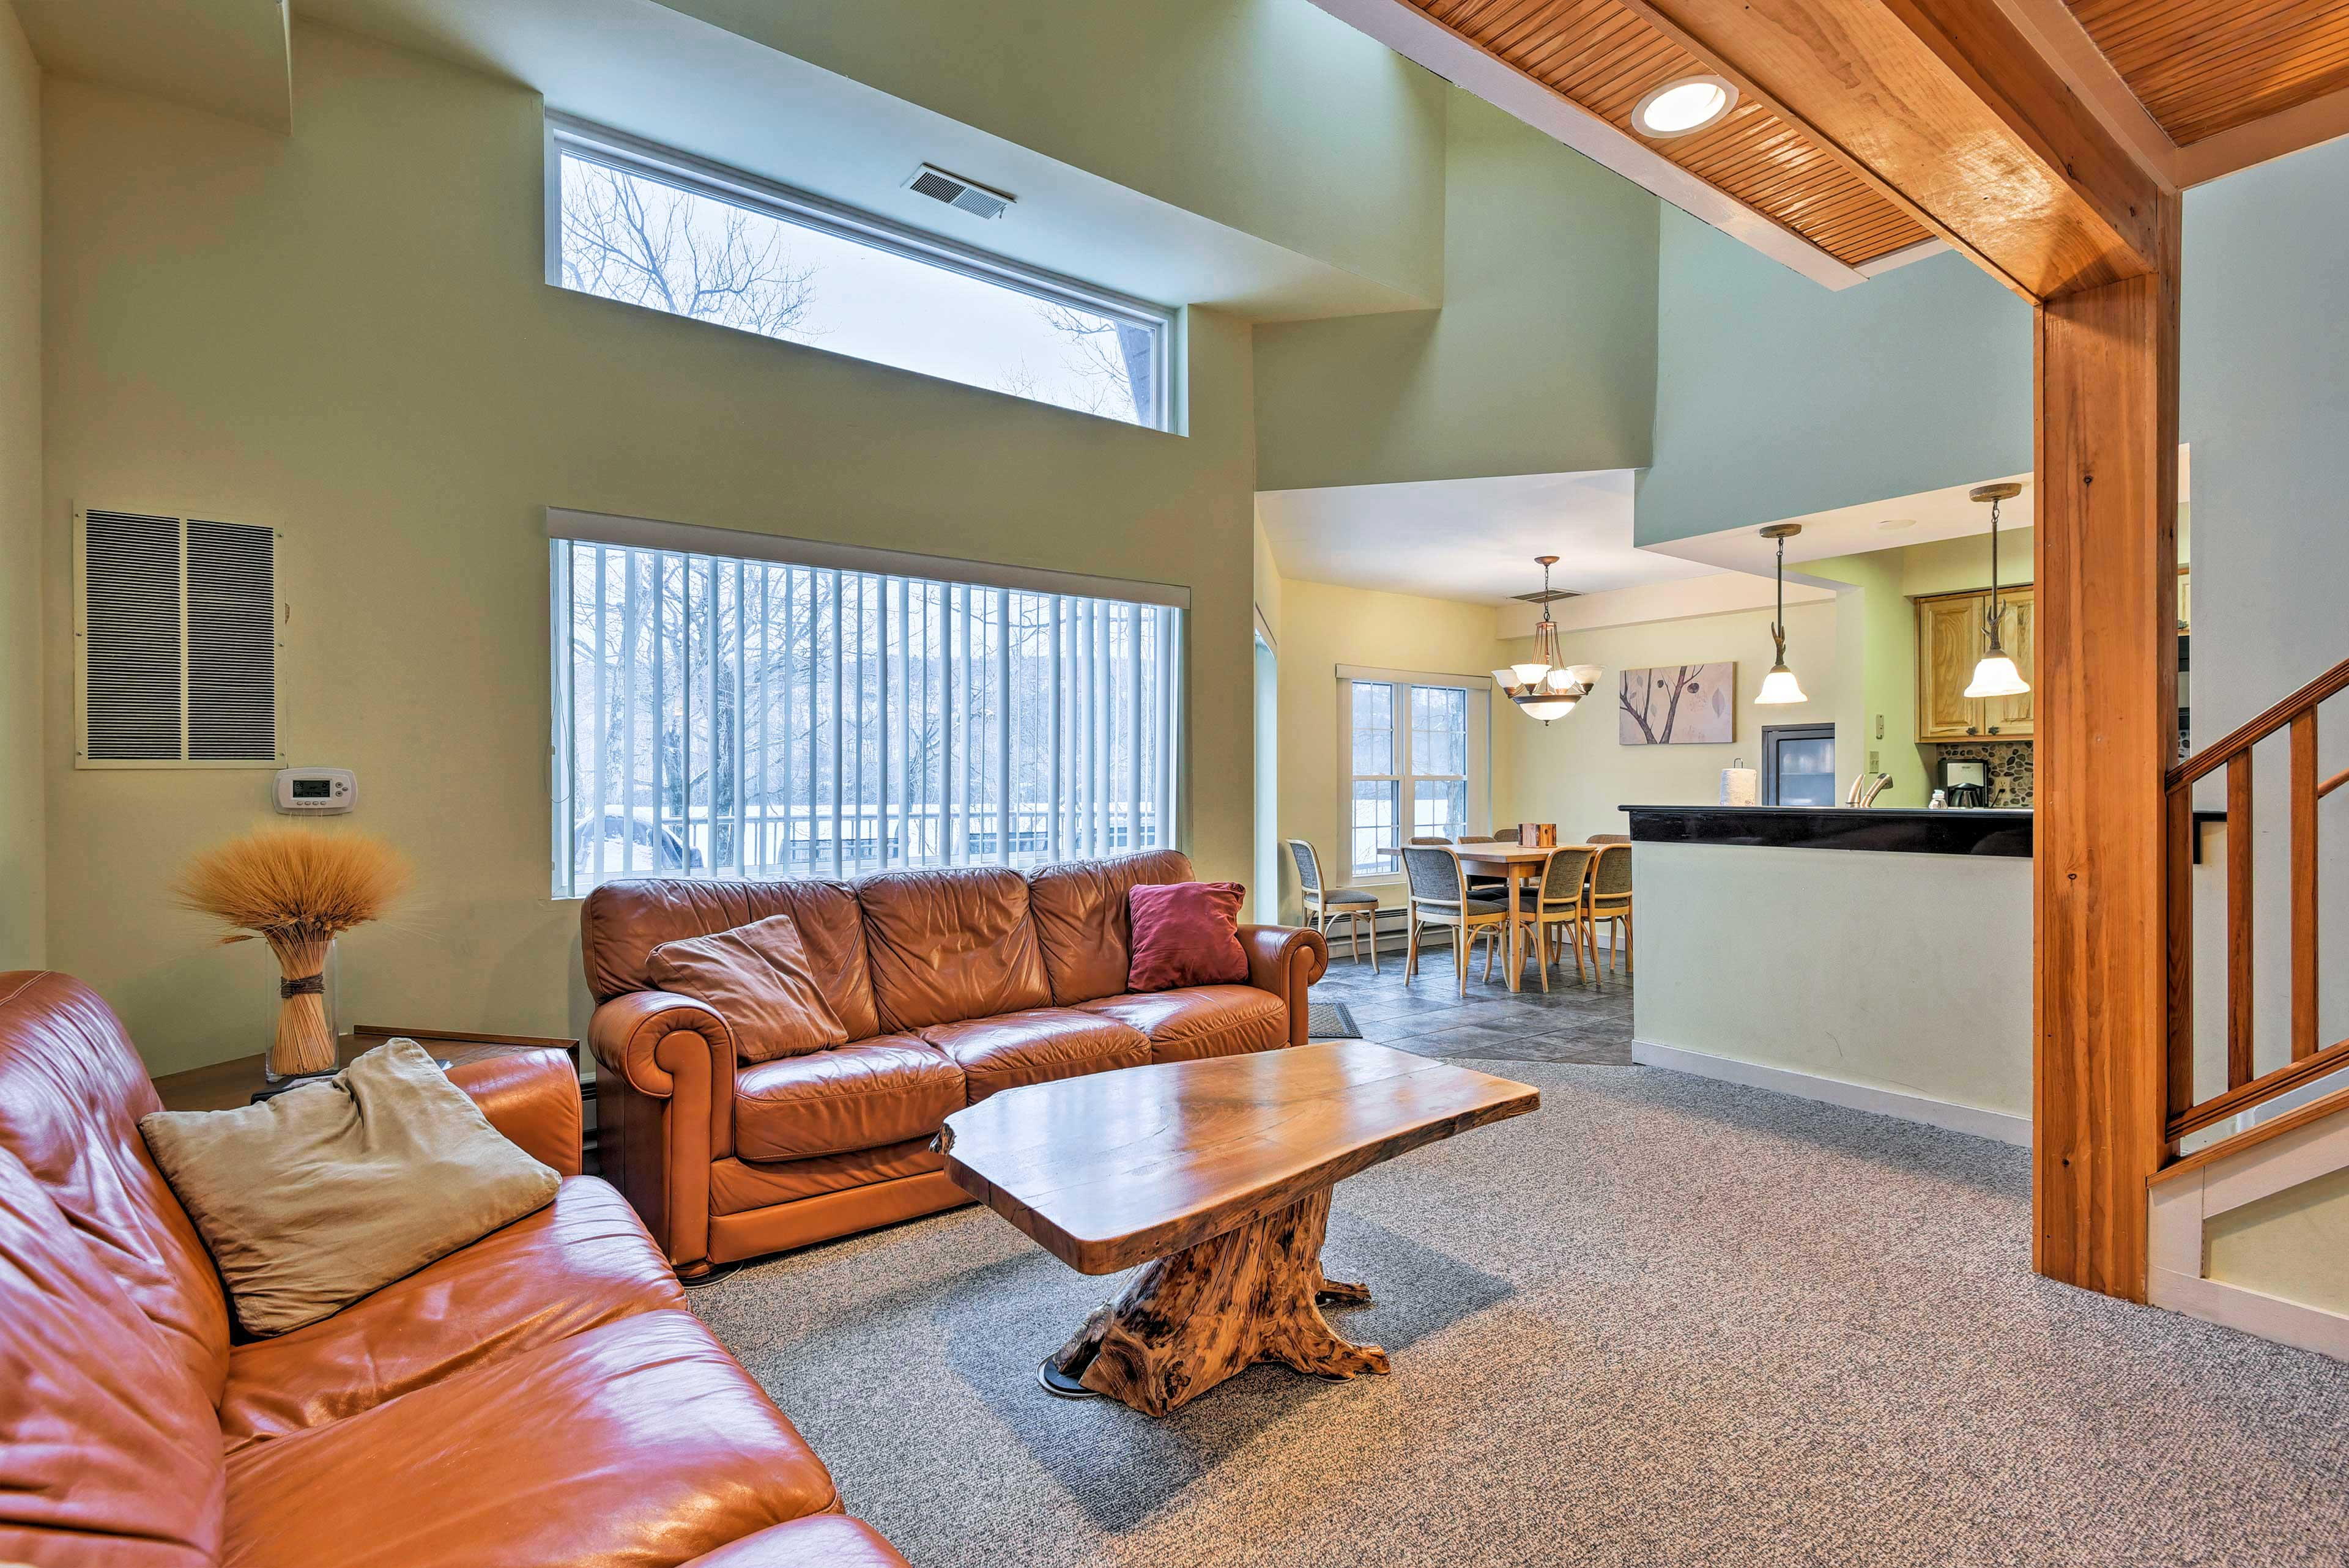 Discover Lake Harmony from this vacation rental condo!